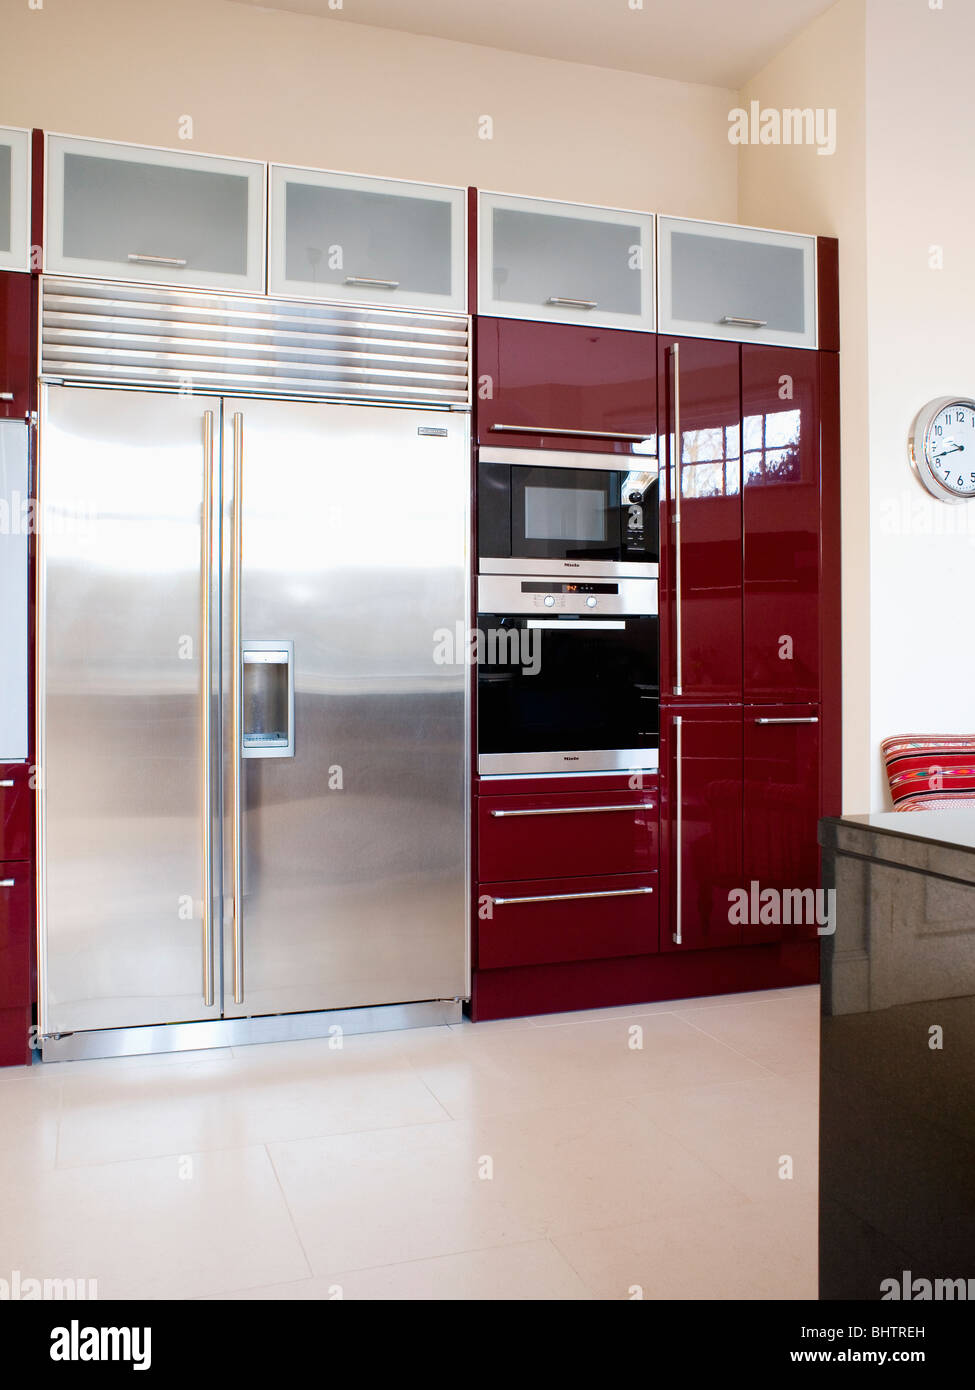 large american style stainless steel fridge freezer in stockfotos large american style. Black Bedroom Furniture Sets. Home Design Ideas